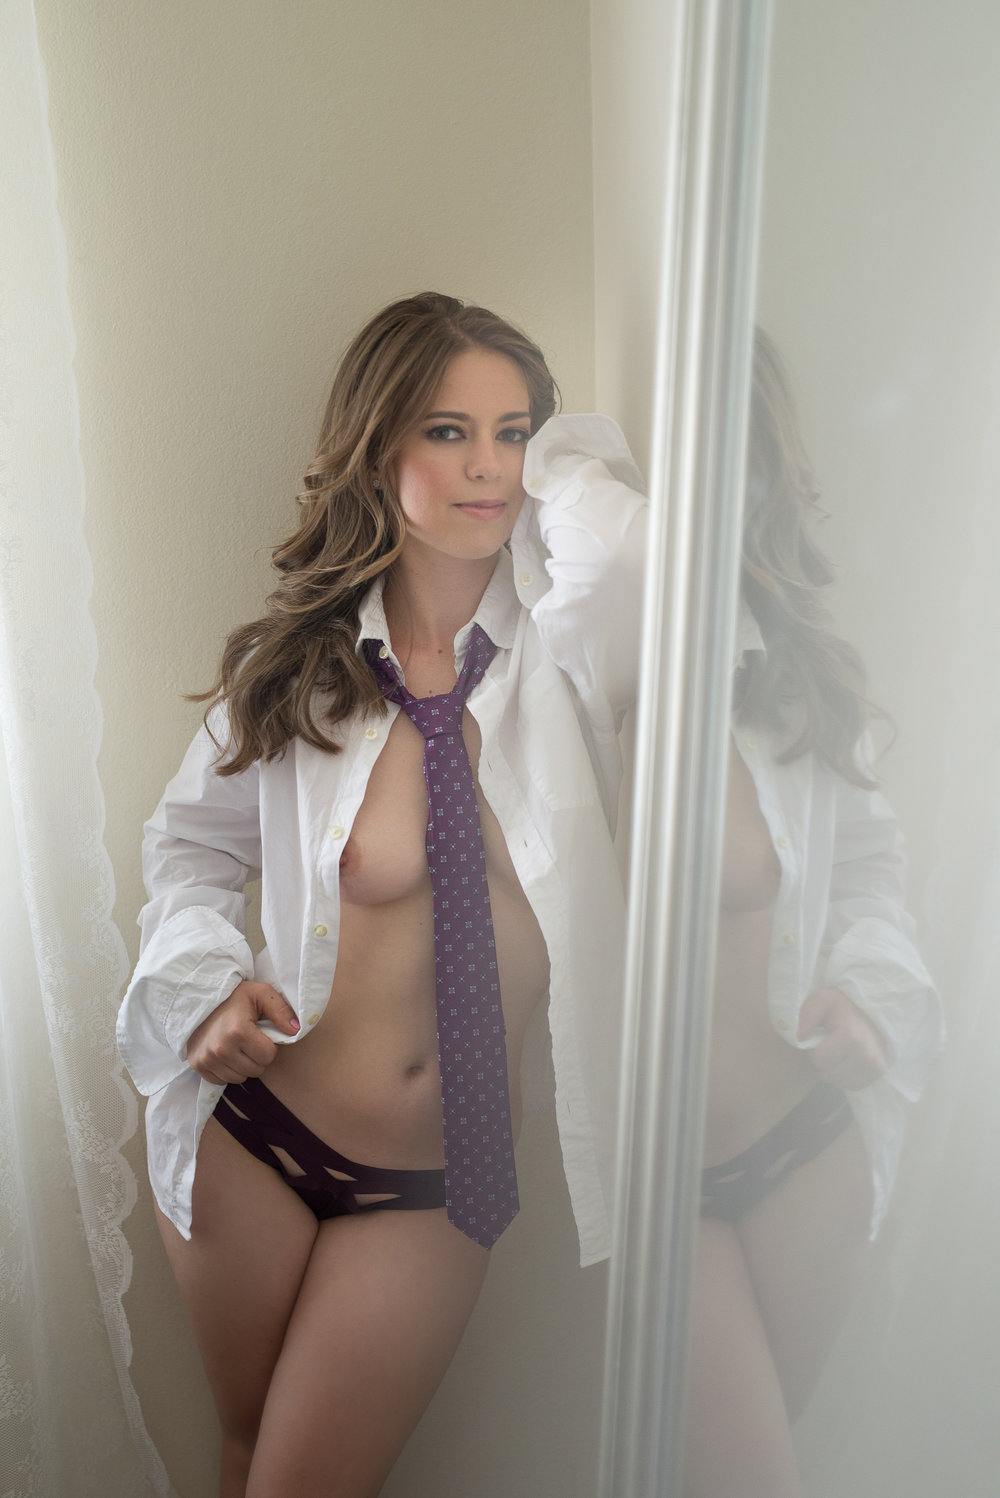 Colorado boudoir photography session of brunette woman wearing unbuttoned shirt and purple tie